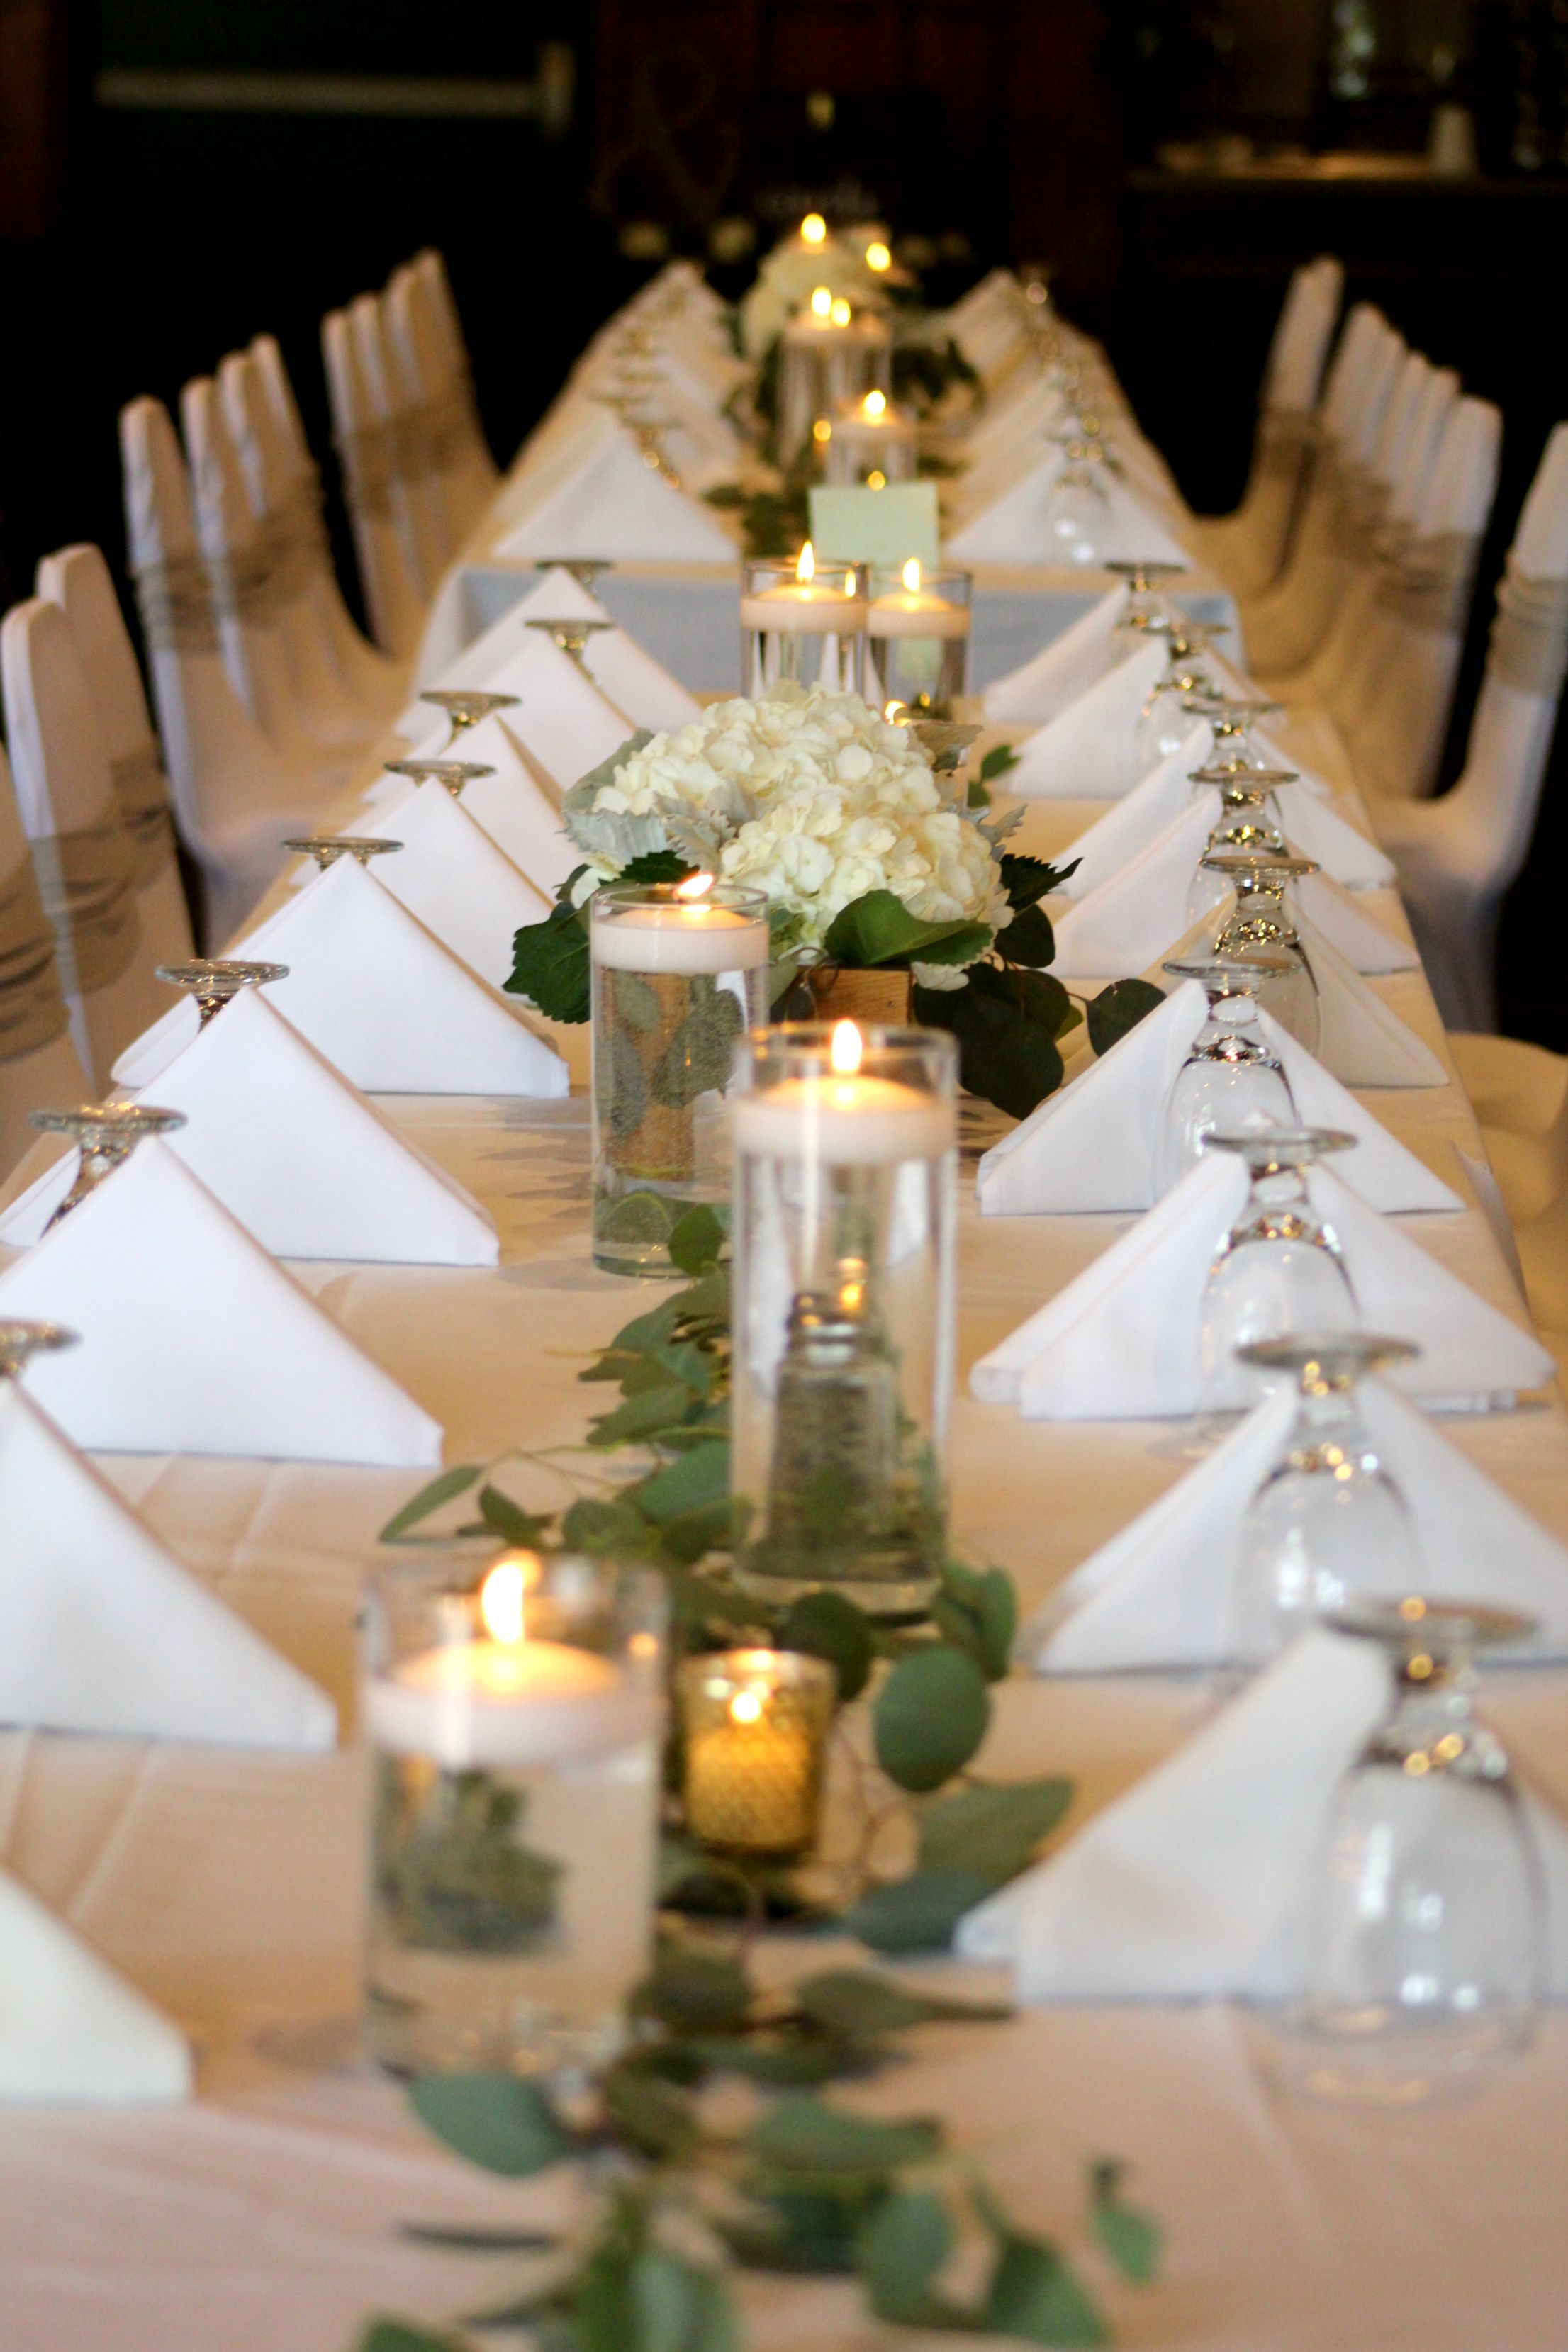 Wooden box centerpieces with white hydrangeas and greenery